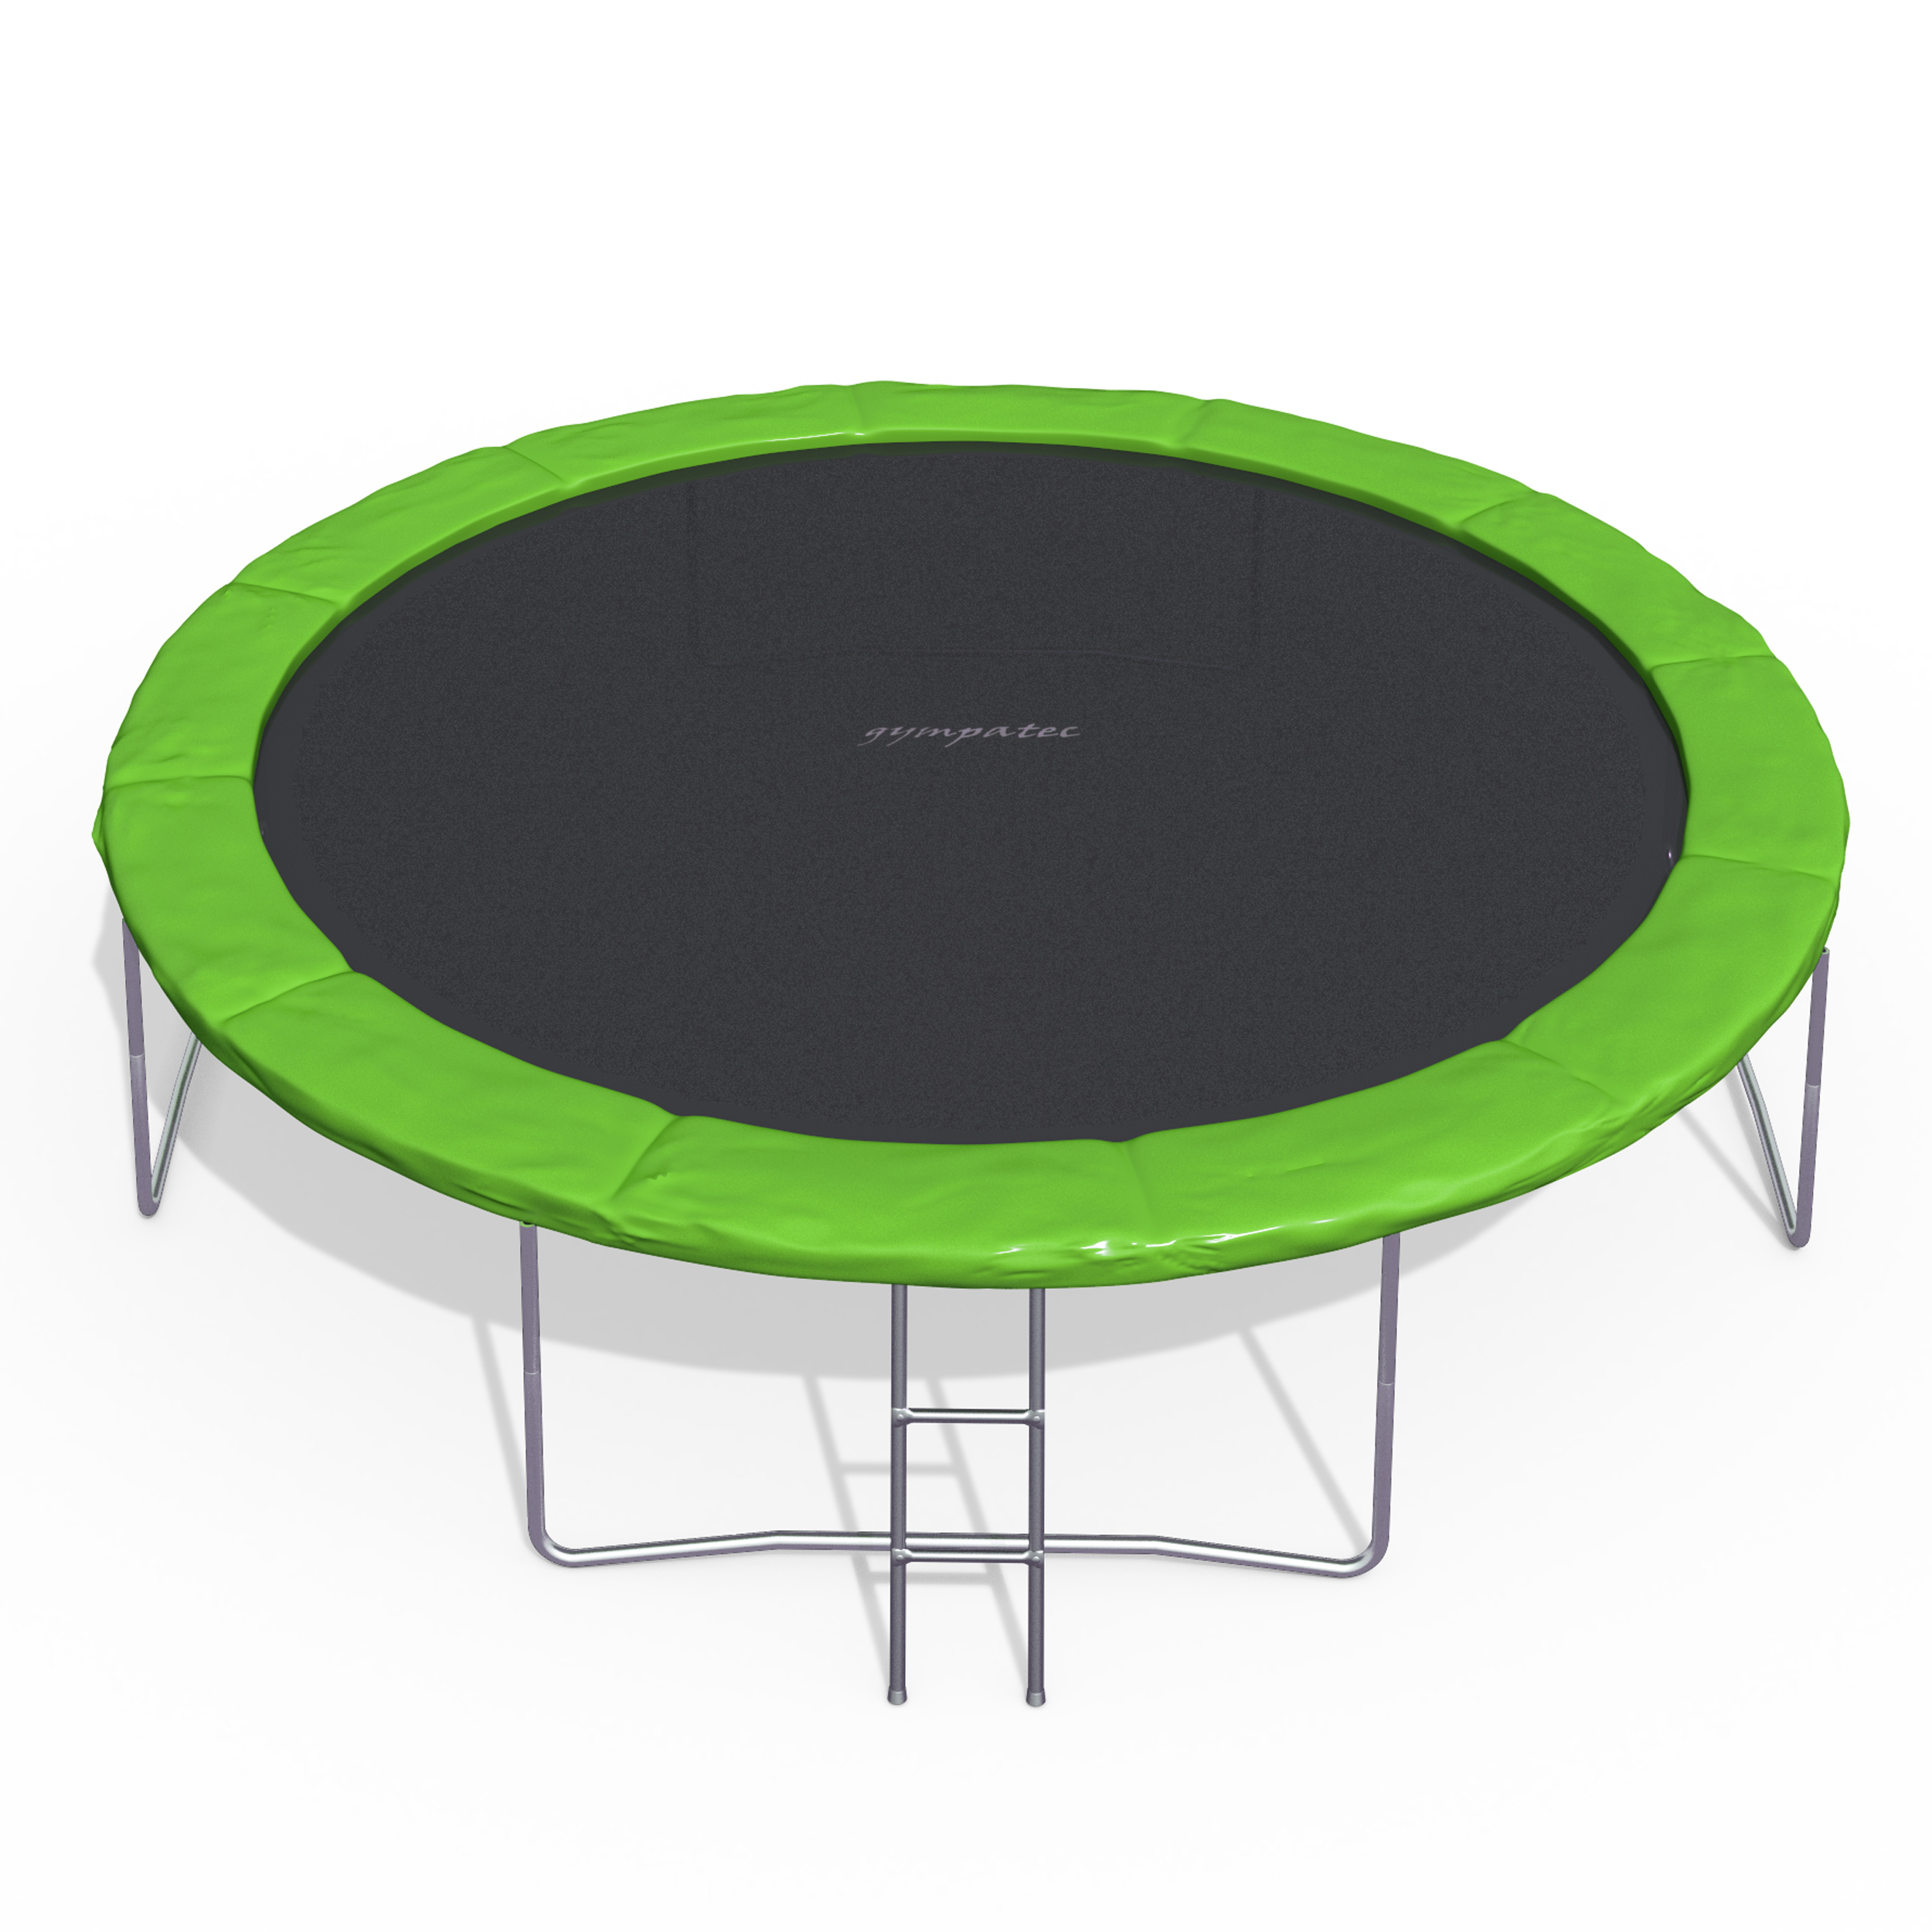 tapis de saut plan de saut plan de saut de rechange pour trampoline 3 70m 72l ebay. Black Bedroom Furniture Sets. Home Design Ideas